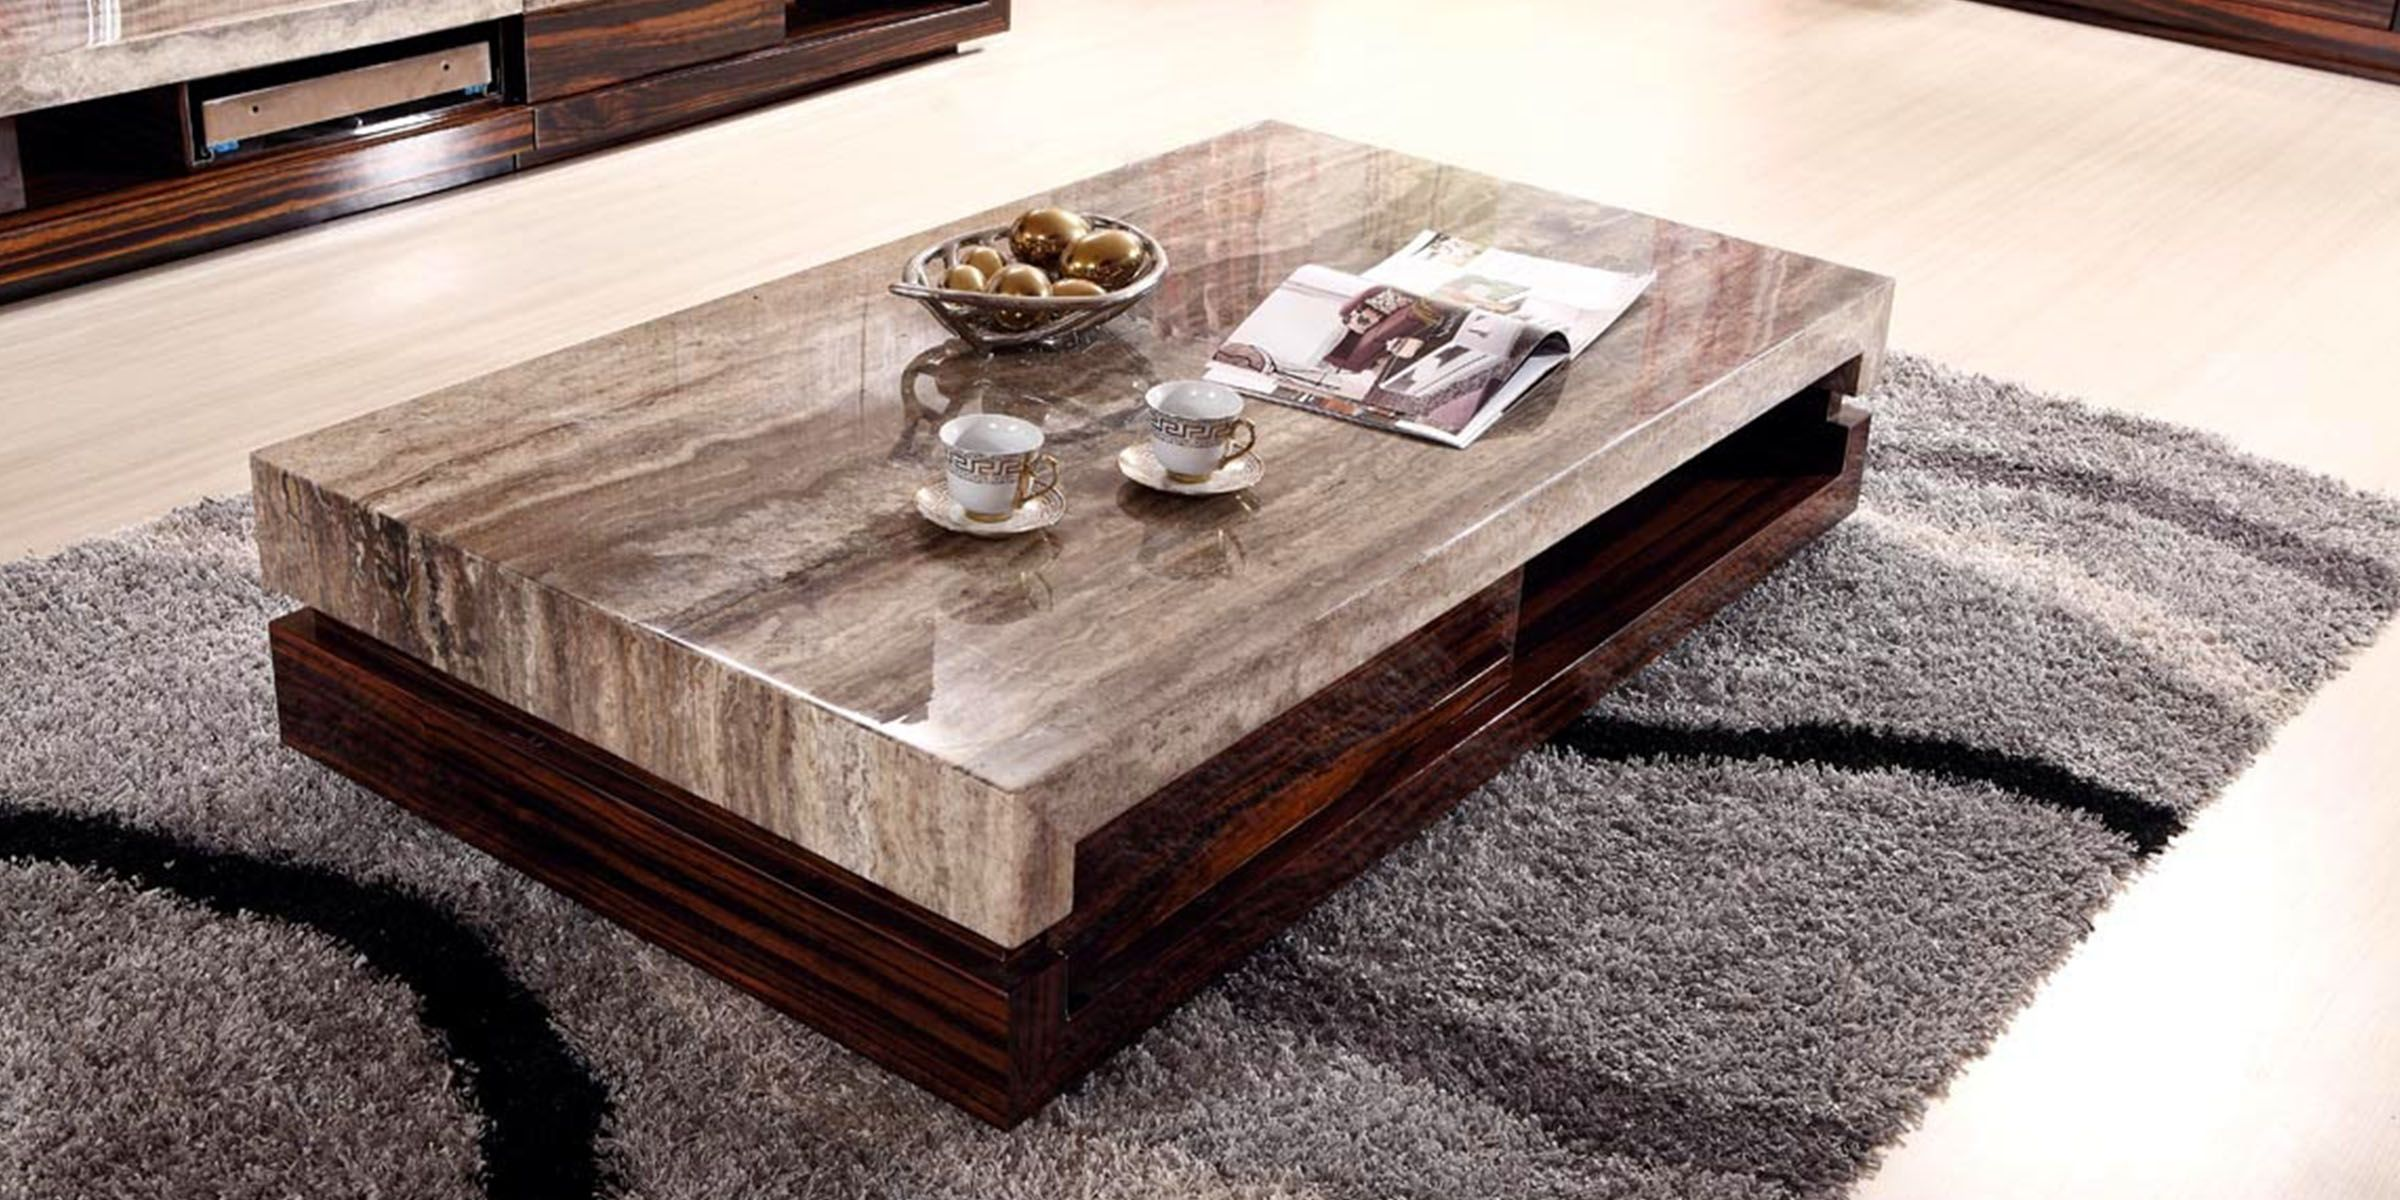 Walnut And Marble Mix Marvelously In The New Zaragosa Coffee Table | Wood Coffee  Tables, Marbles And Coffee